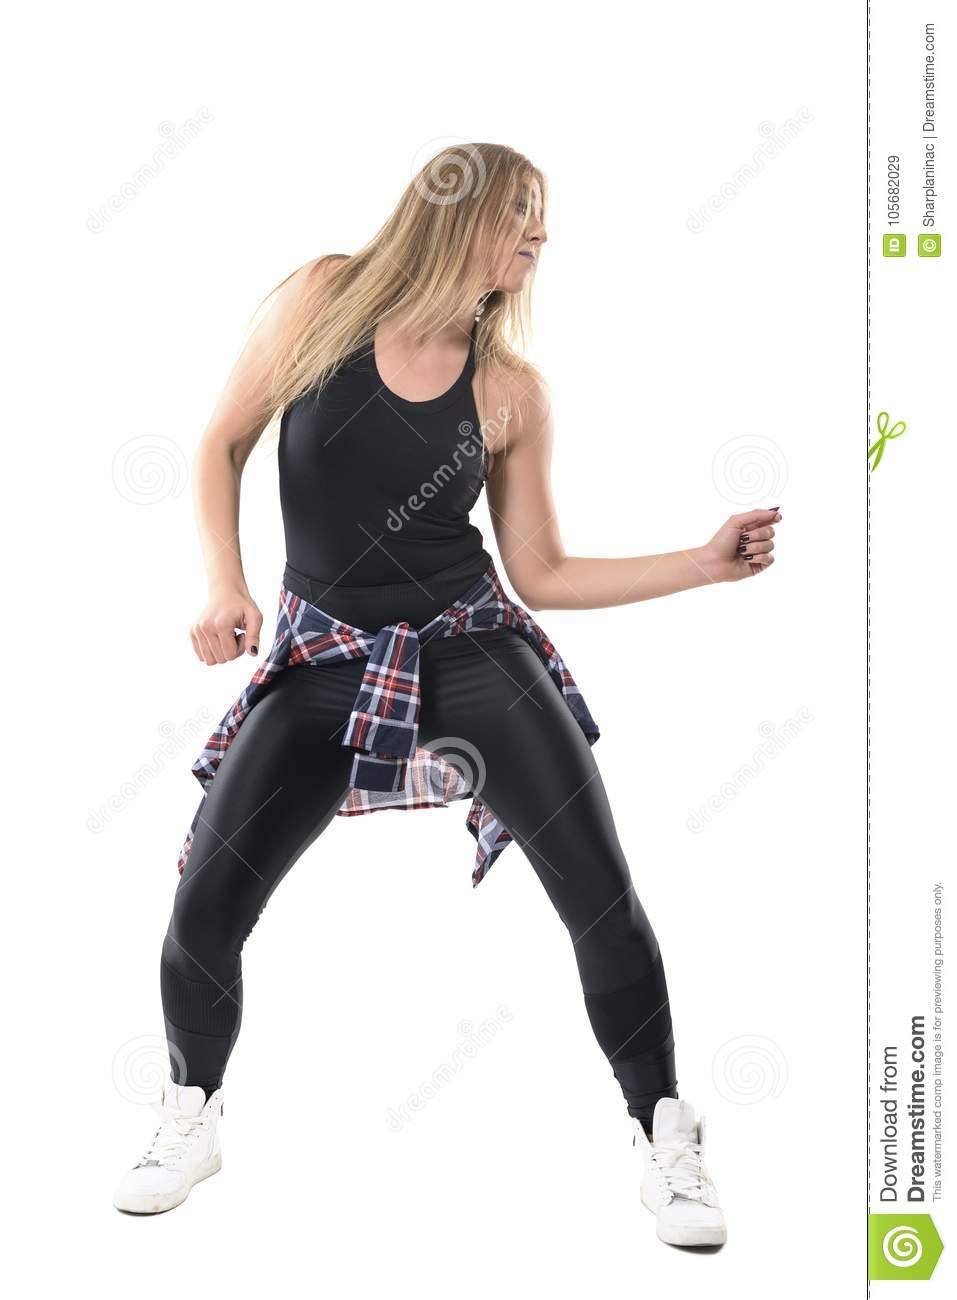 Blonde young woman dancing dancehall aerobics and moving arms looking away. Front view.